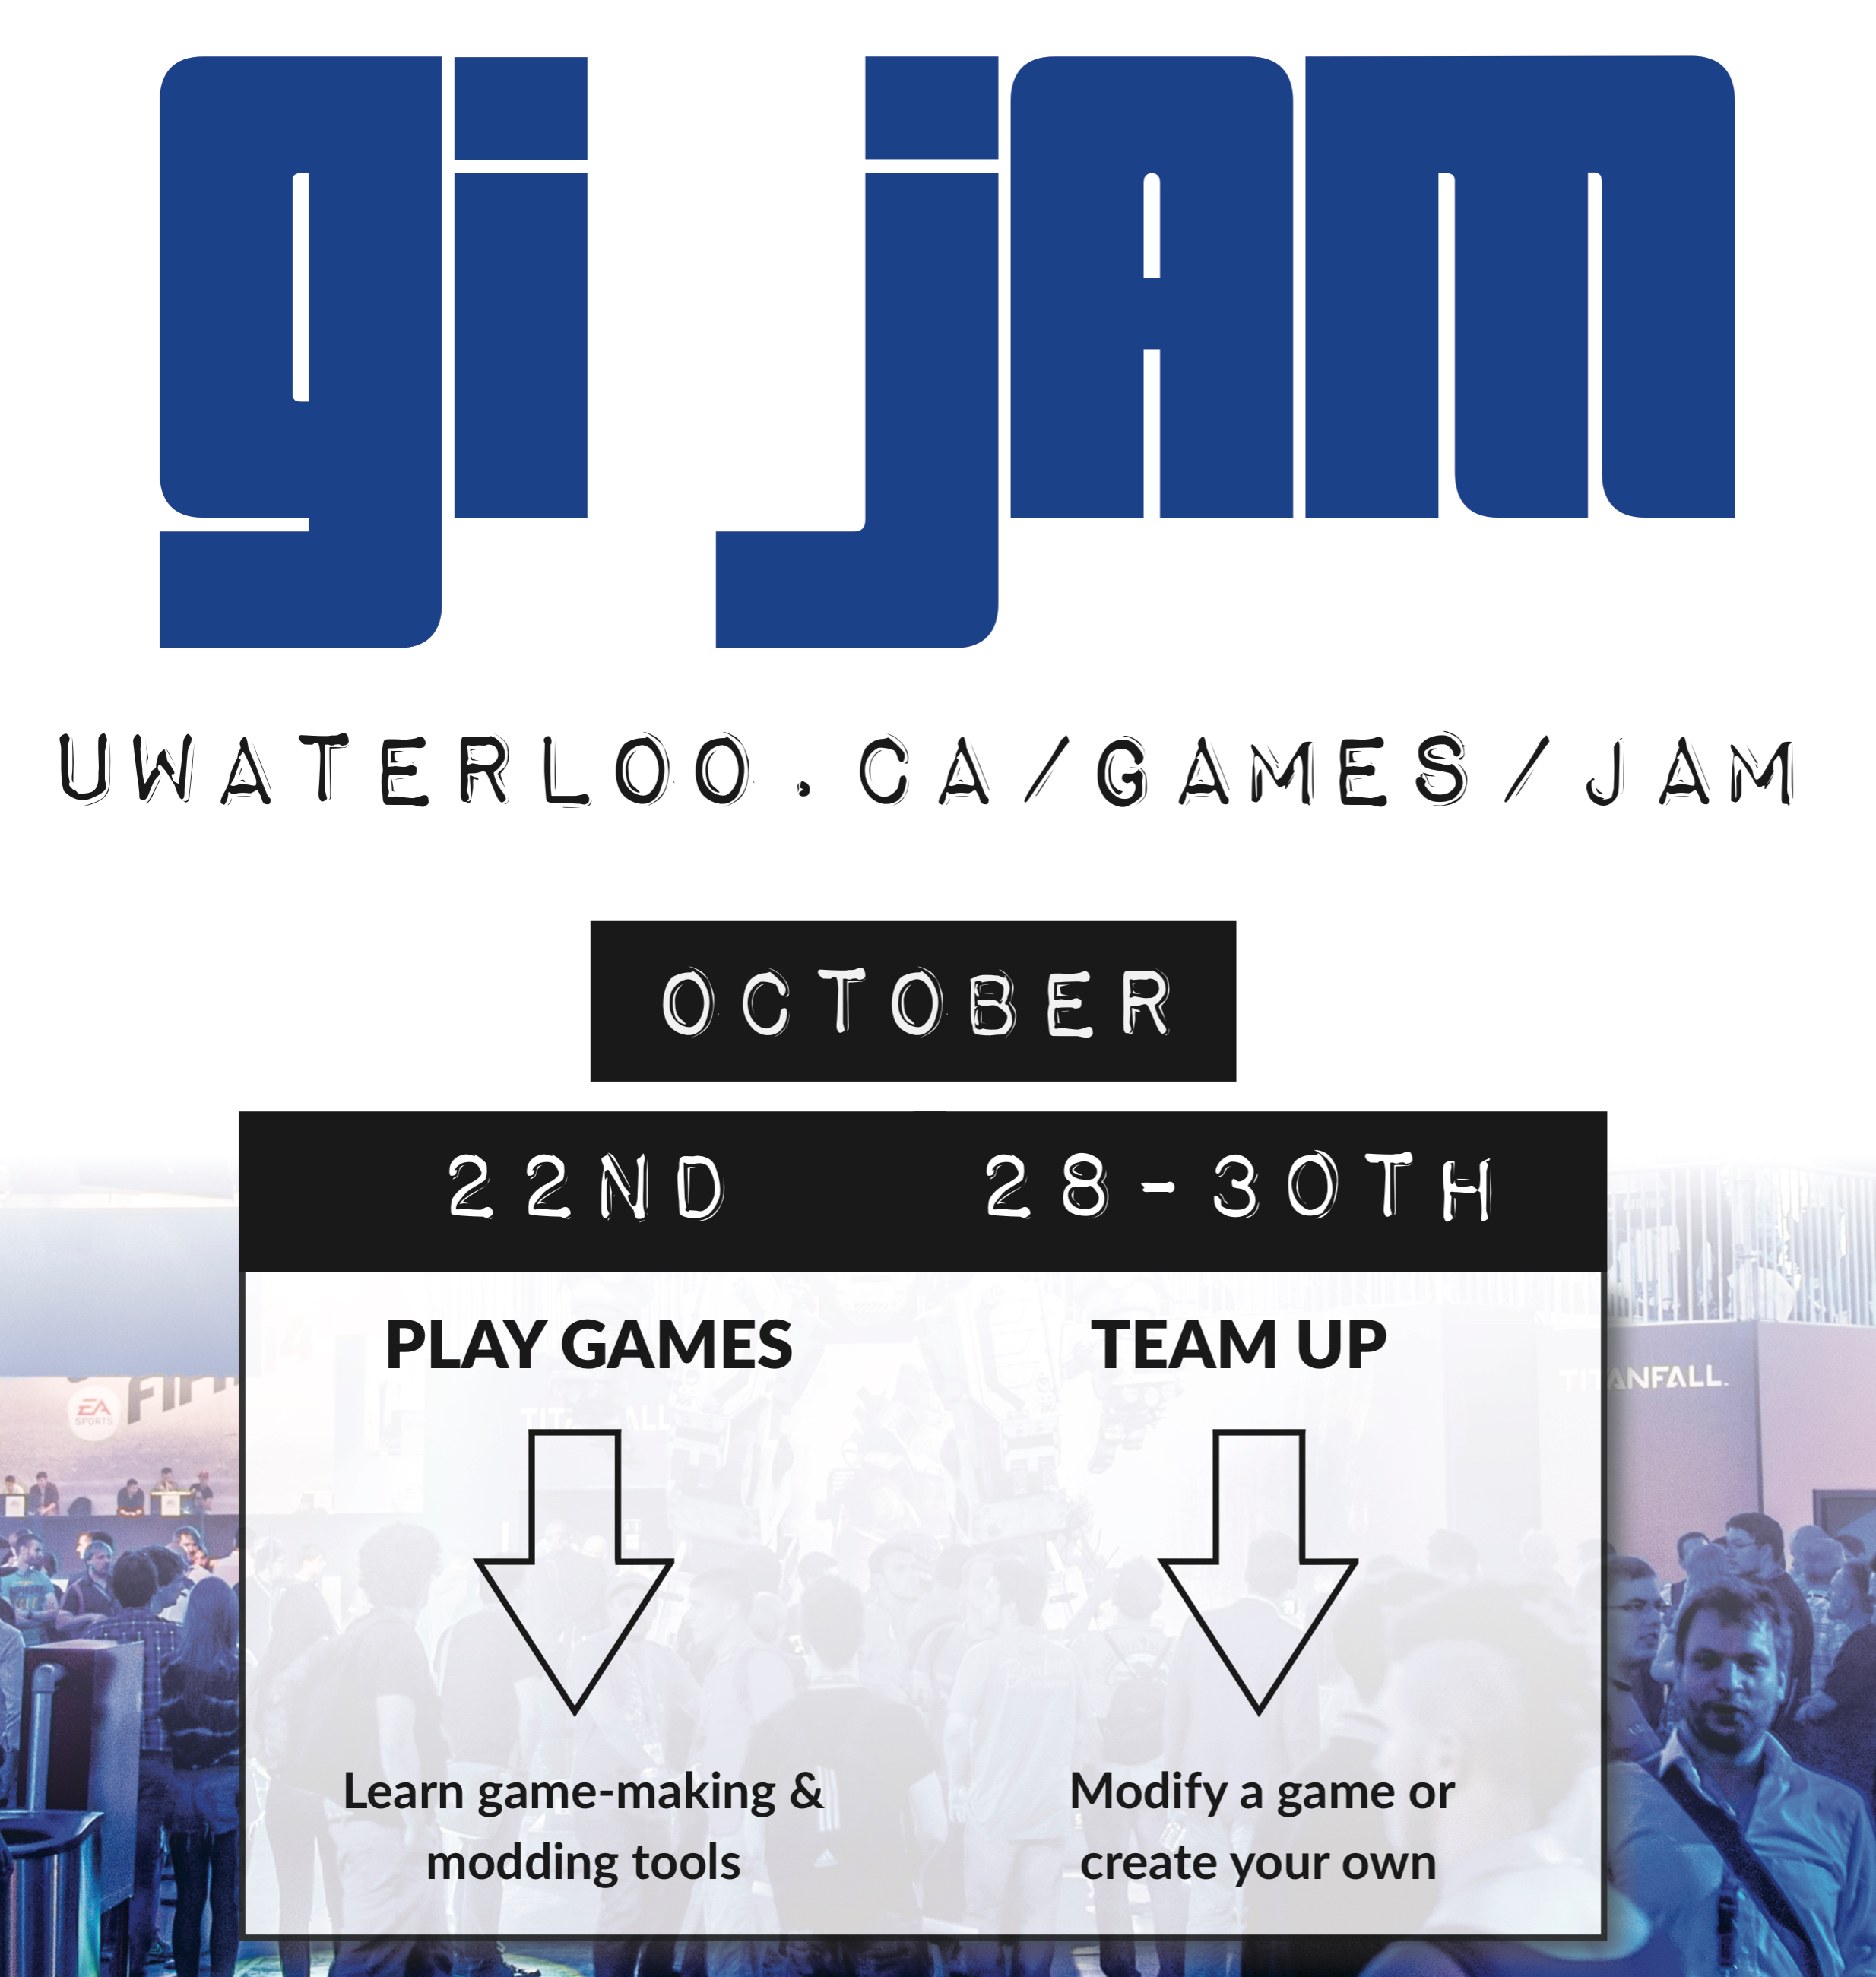 GI Jam Poster, events October 22nd and the weekend of the 28th